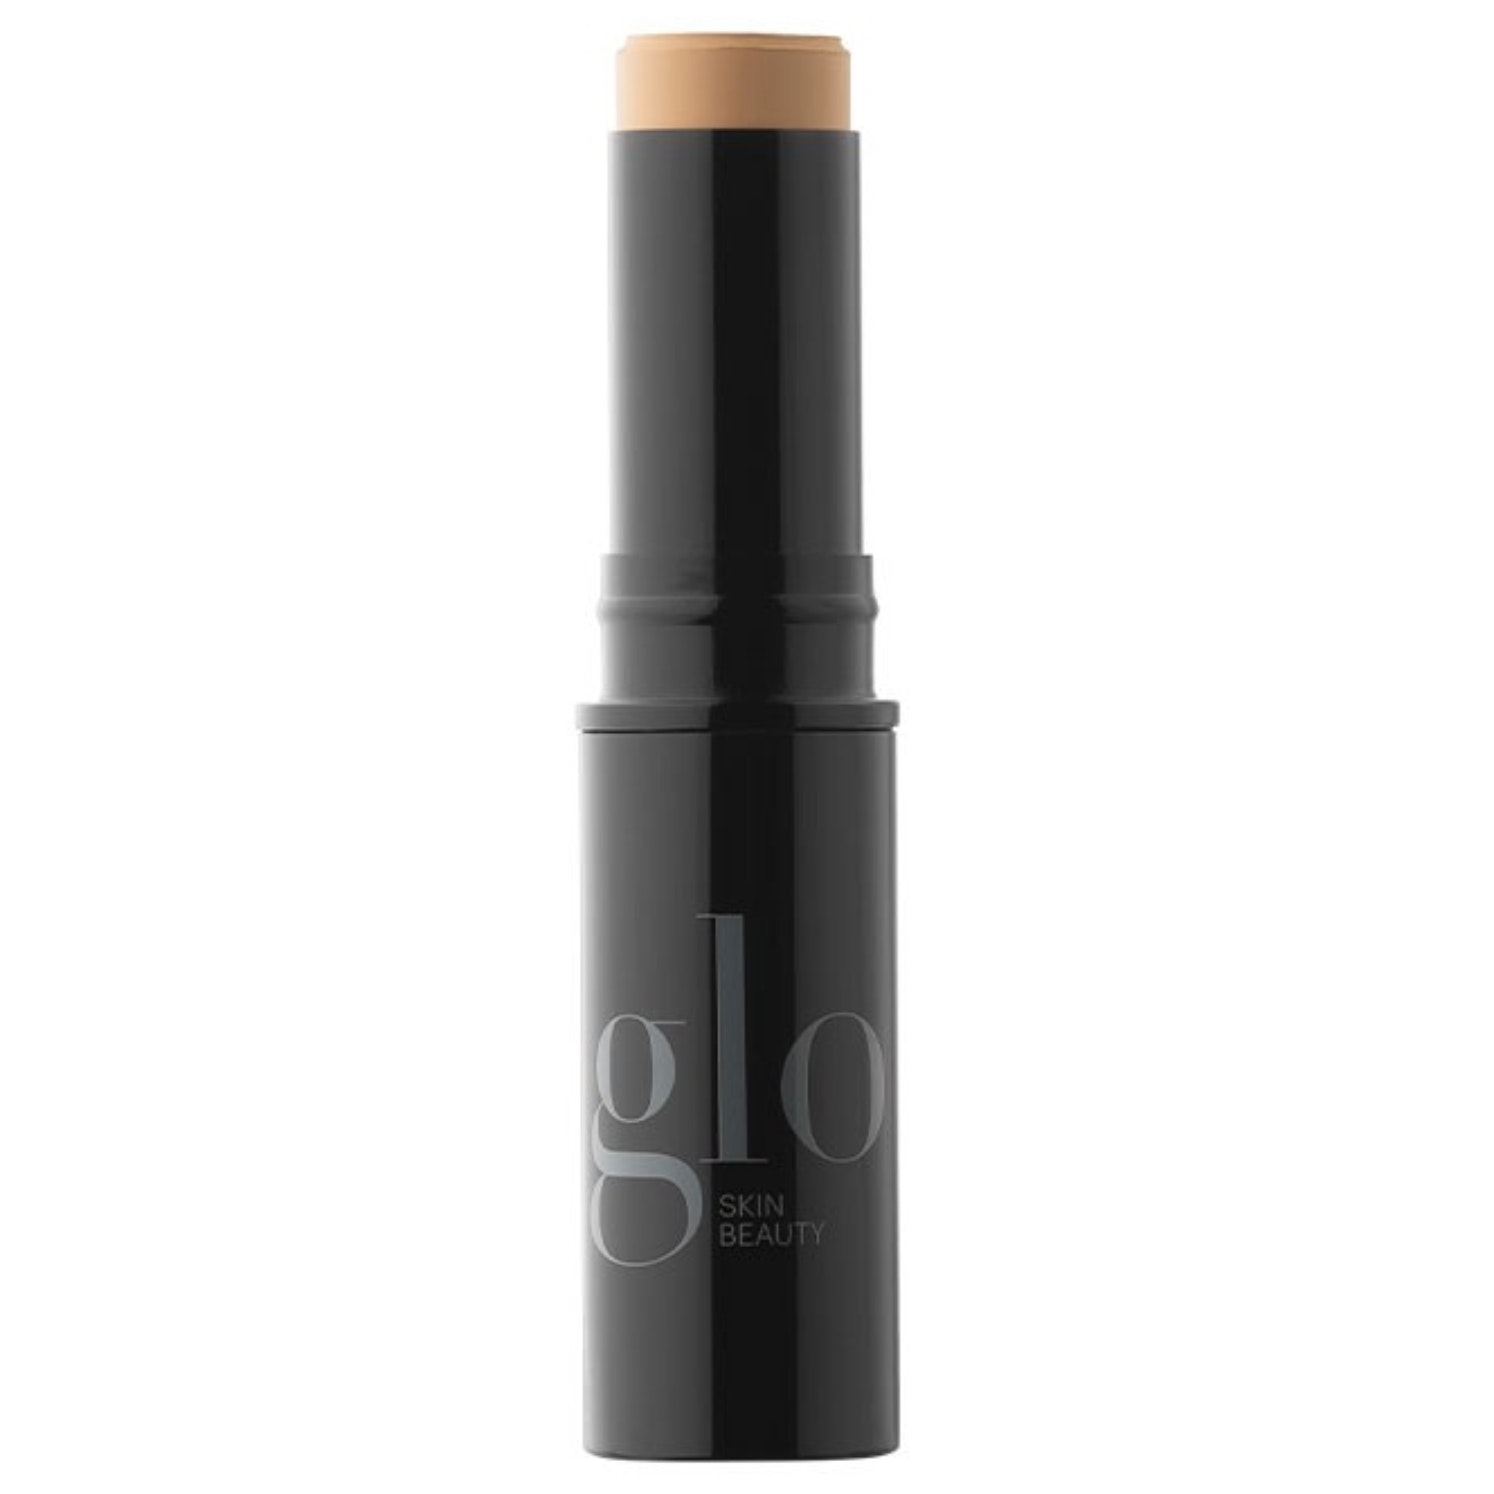 Glo® Skin Beauty Mineral Foundation Stick